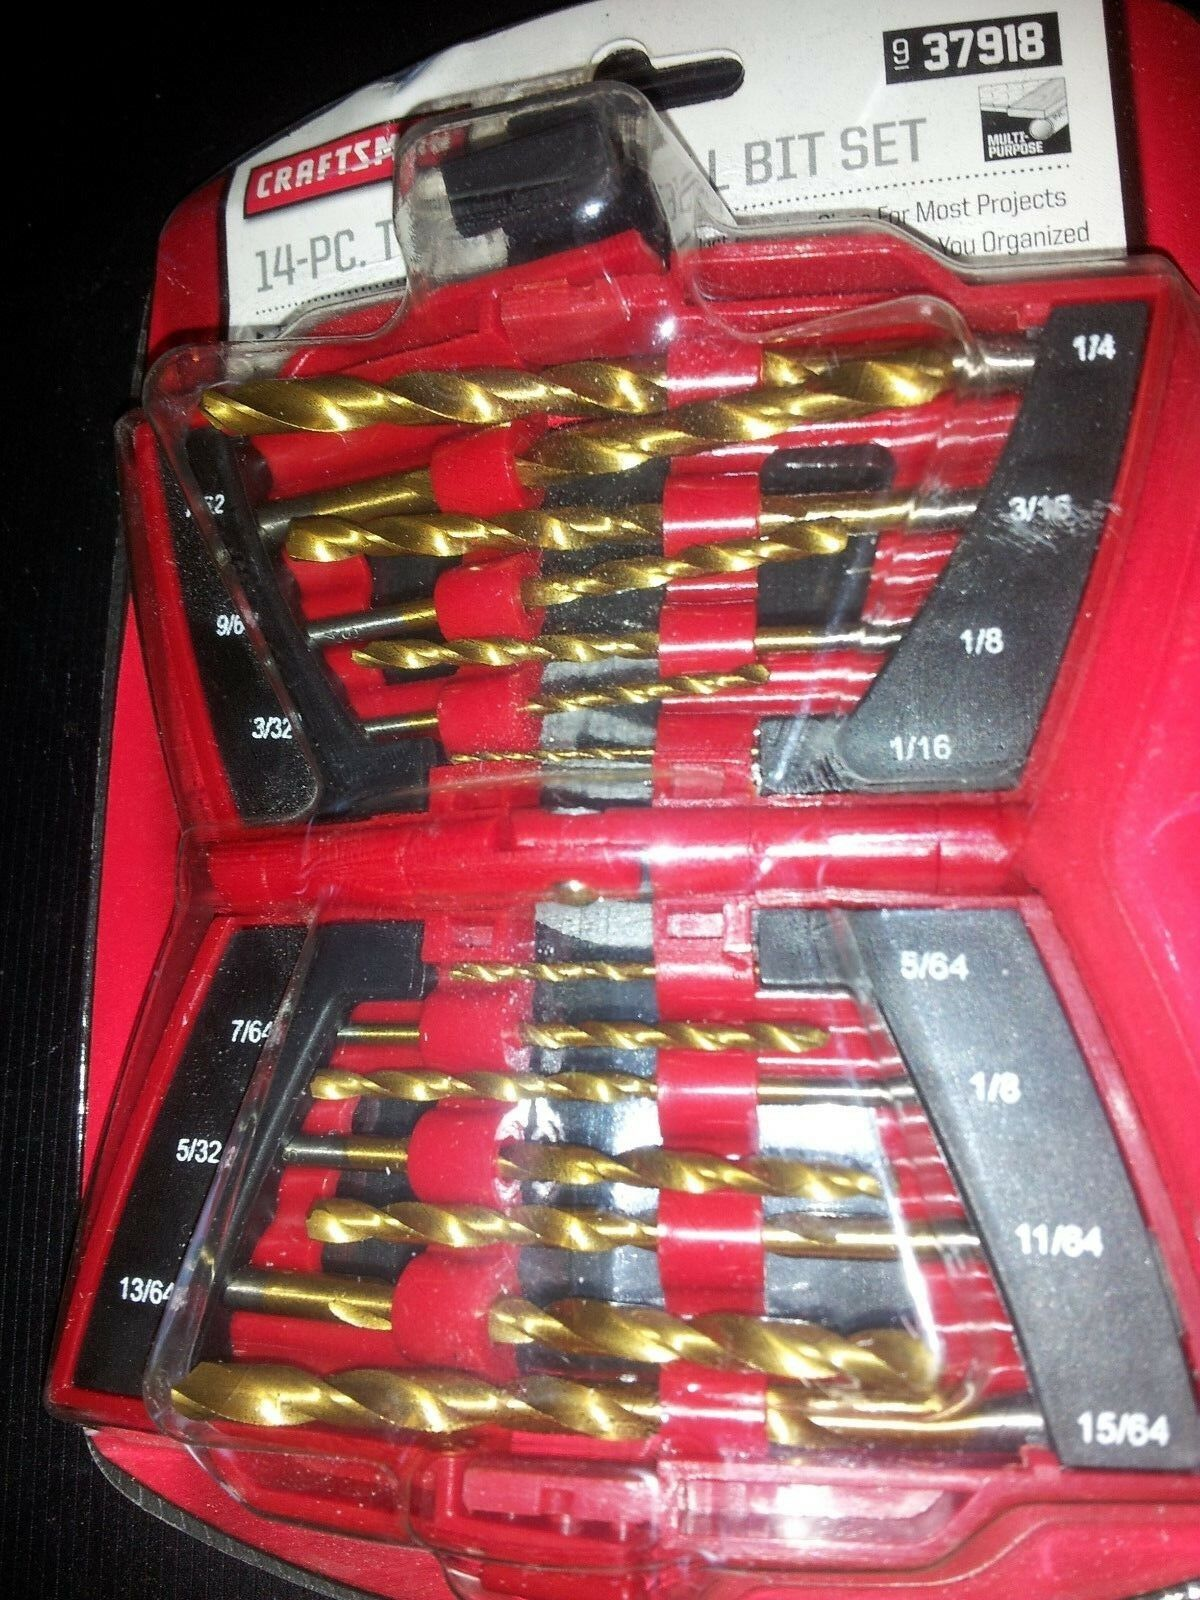 NEW Craftsman 14 Piece Titanium Drill Bit Set In Fold Out Ca